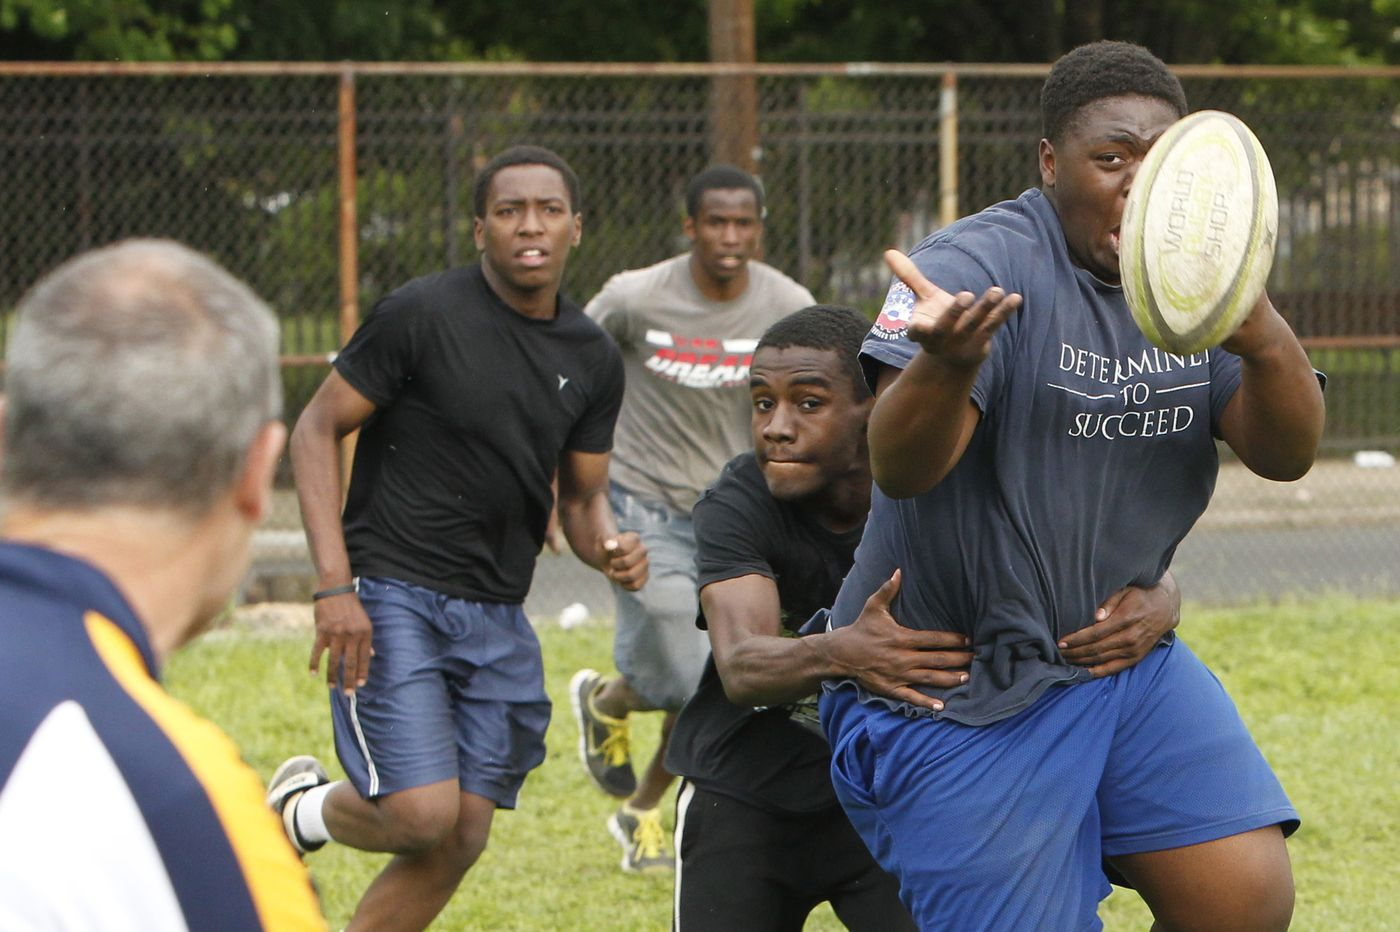 These kids from North Philly formed an unlikely rugby team. Now their underdog story is a movie.